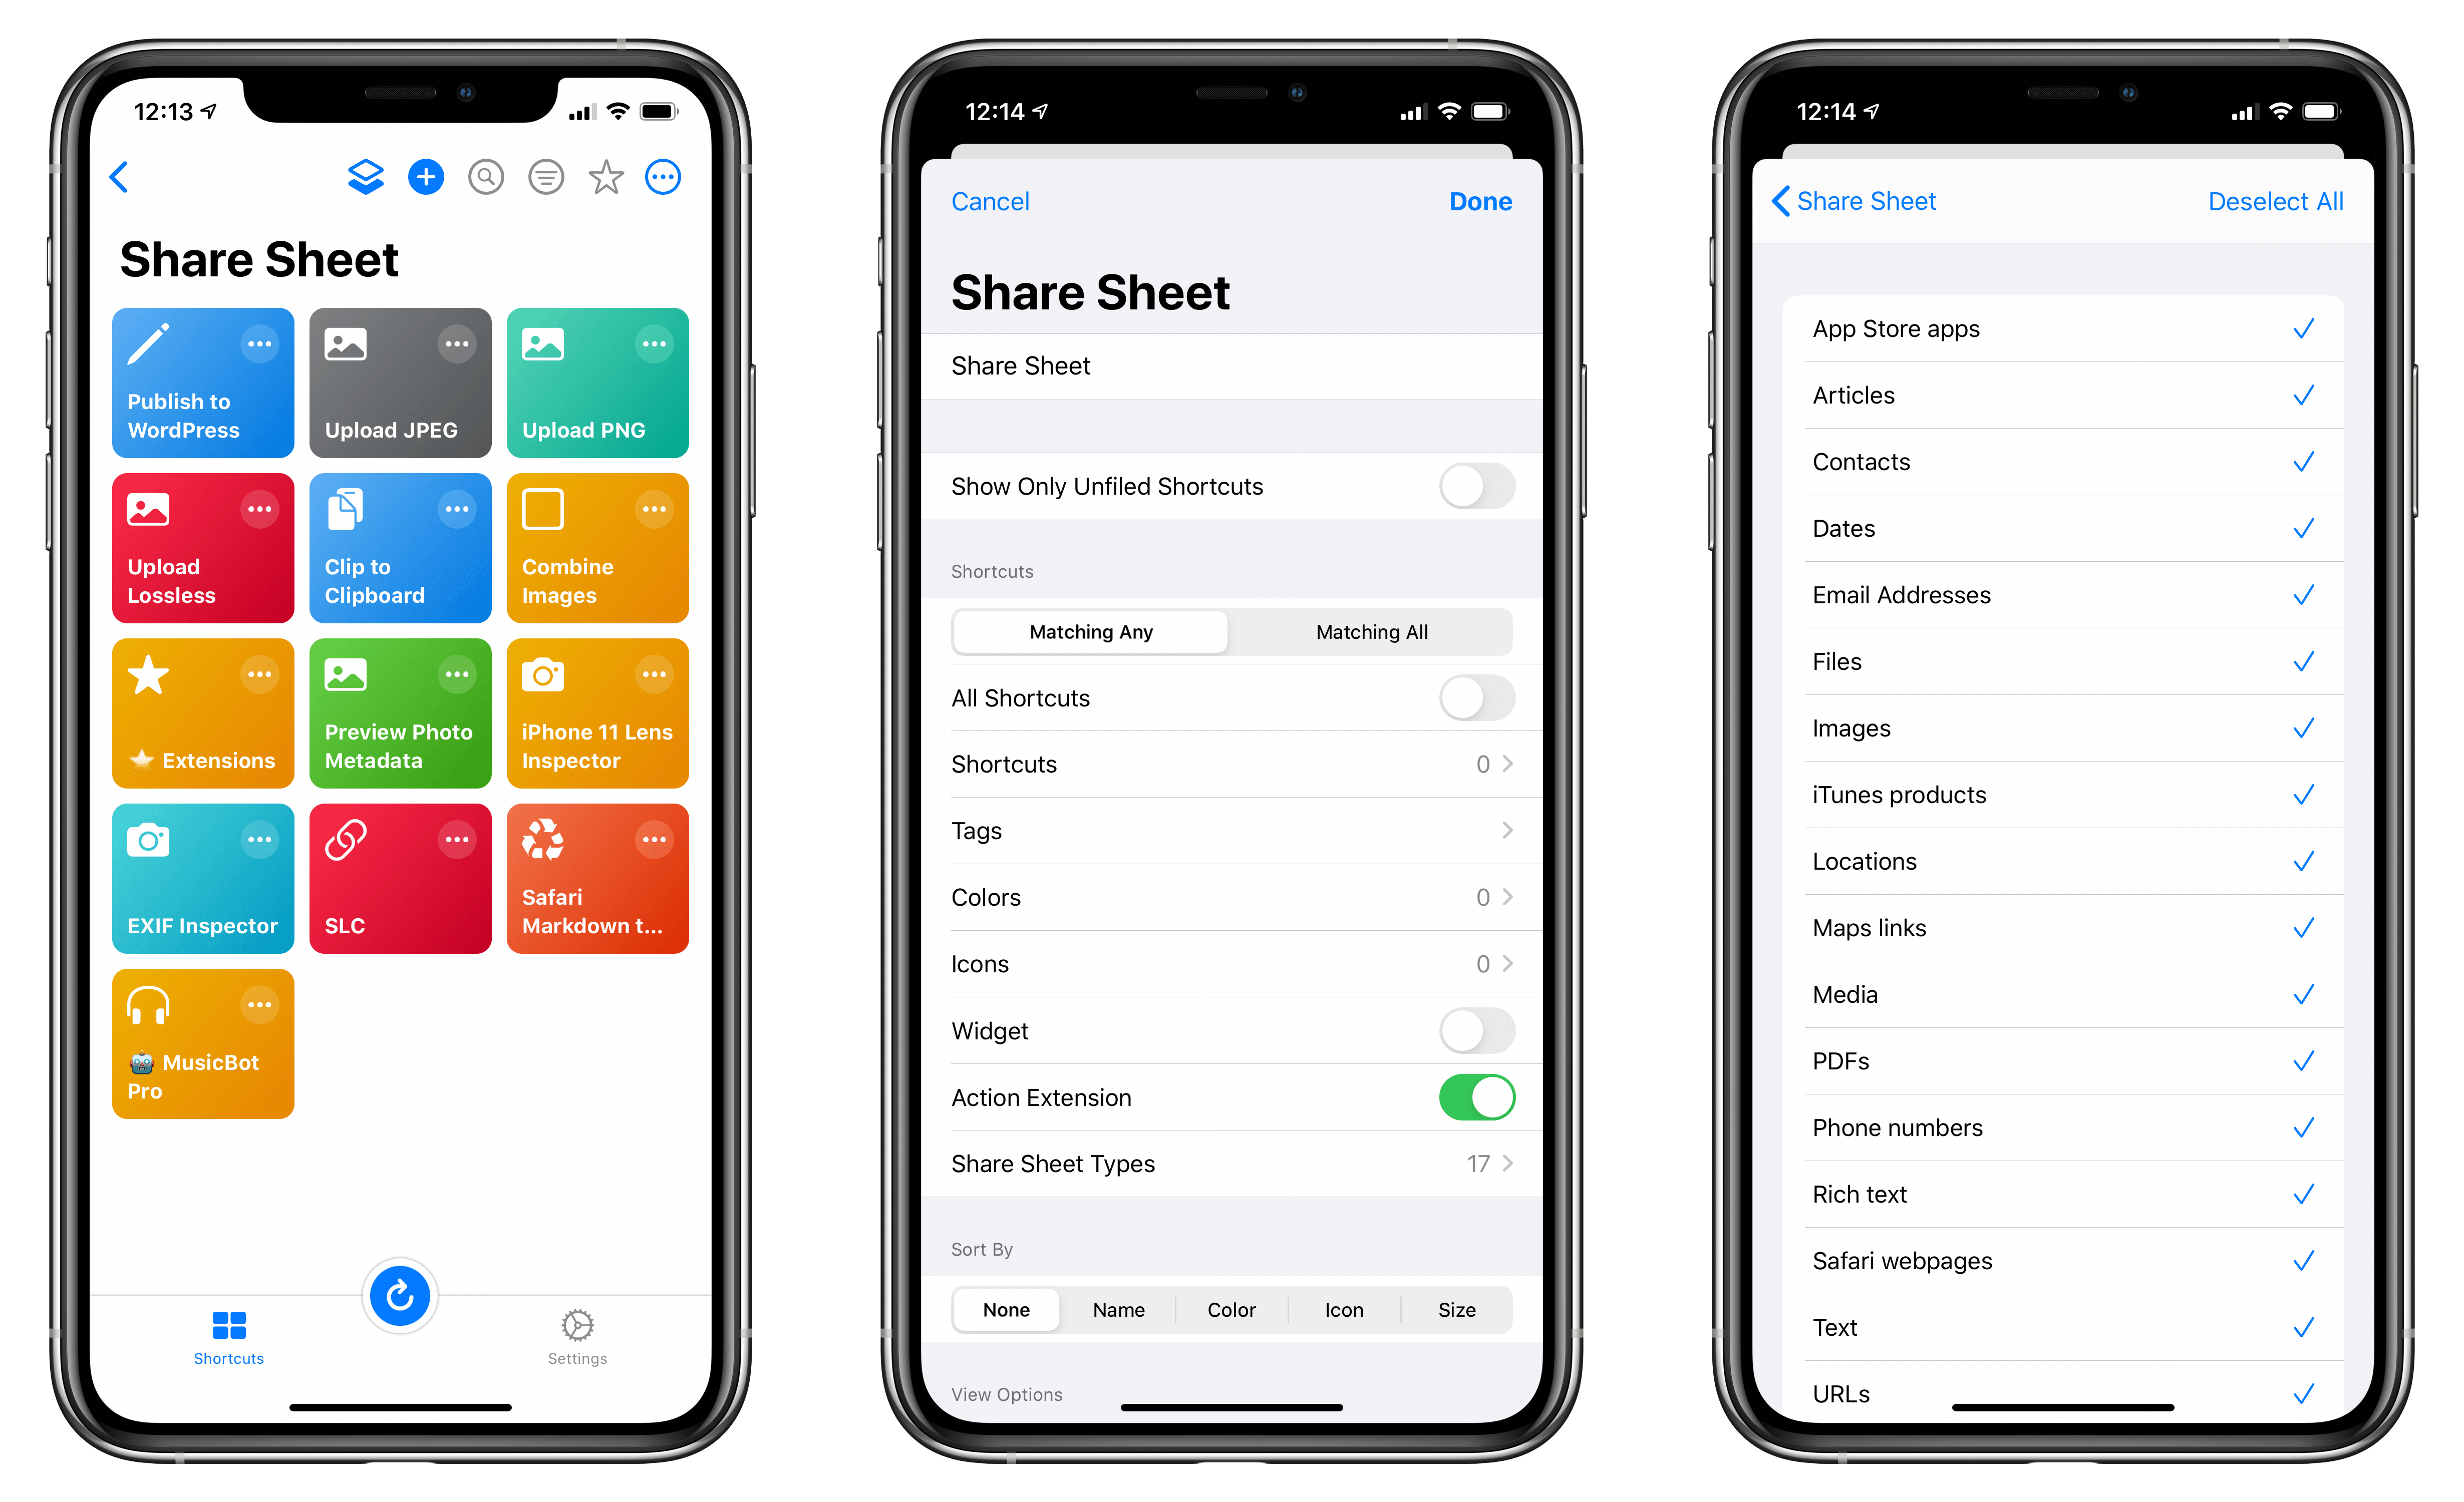 You can create a smart folder that shows you shortcuts you've enabled for use in the share sheet.